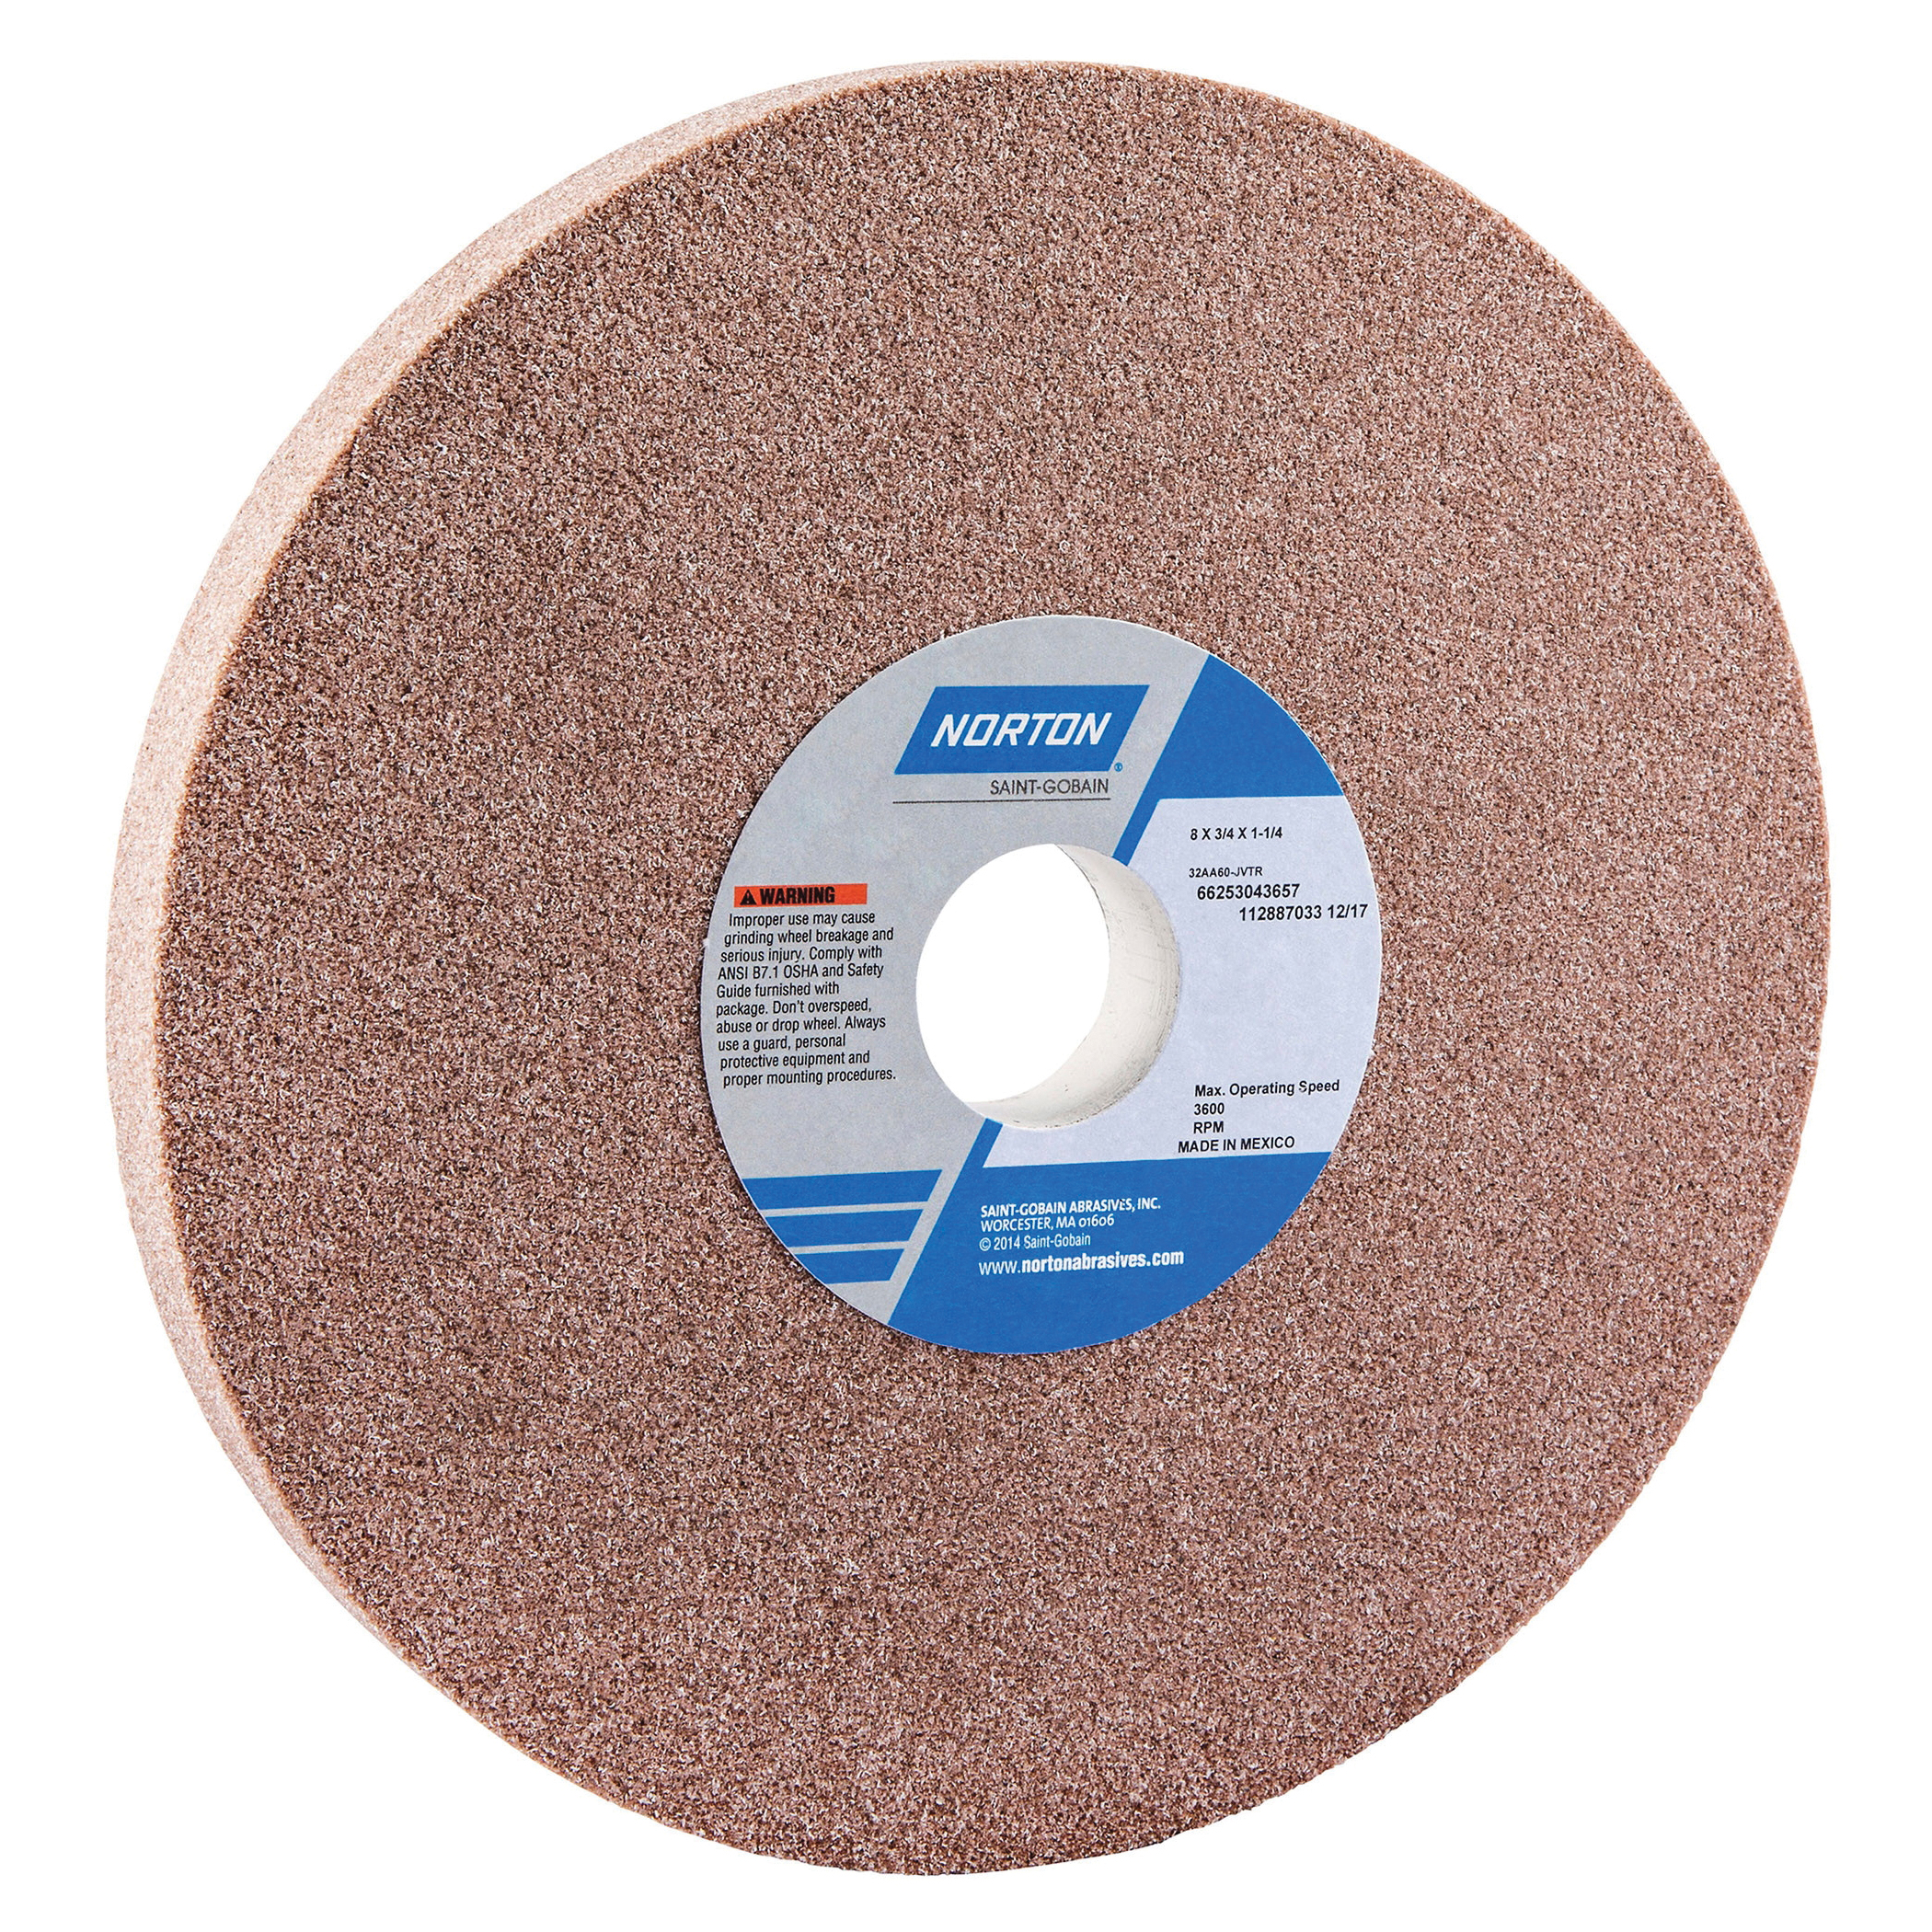 Norton® 66253043657 32AA Straight Toolroom Wheel, 8 in Dia x 3/4 in THK, 1-1/4 in Center Hole, 60 Grit, Aluminum Oxide Abrasive